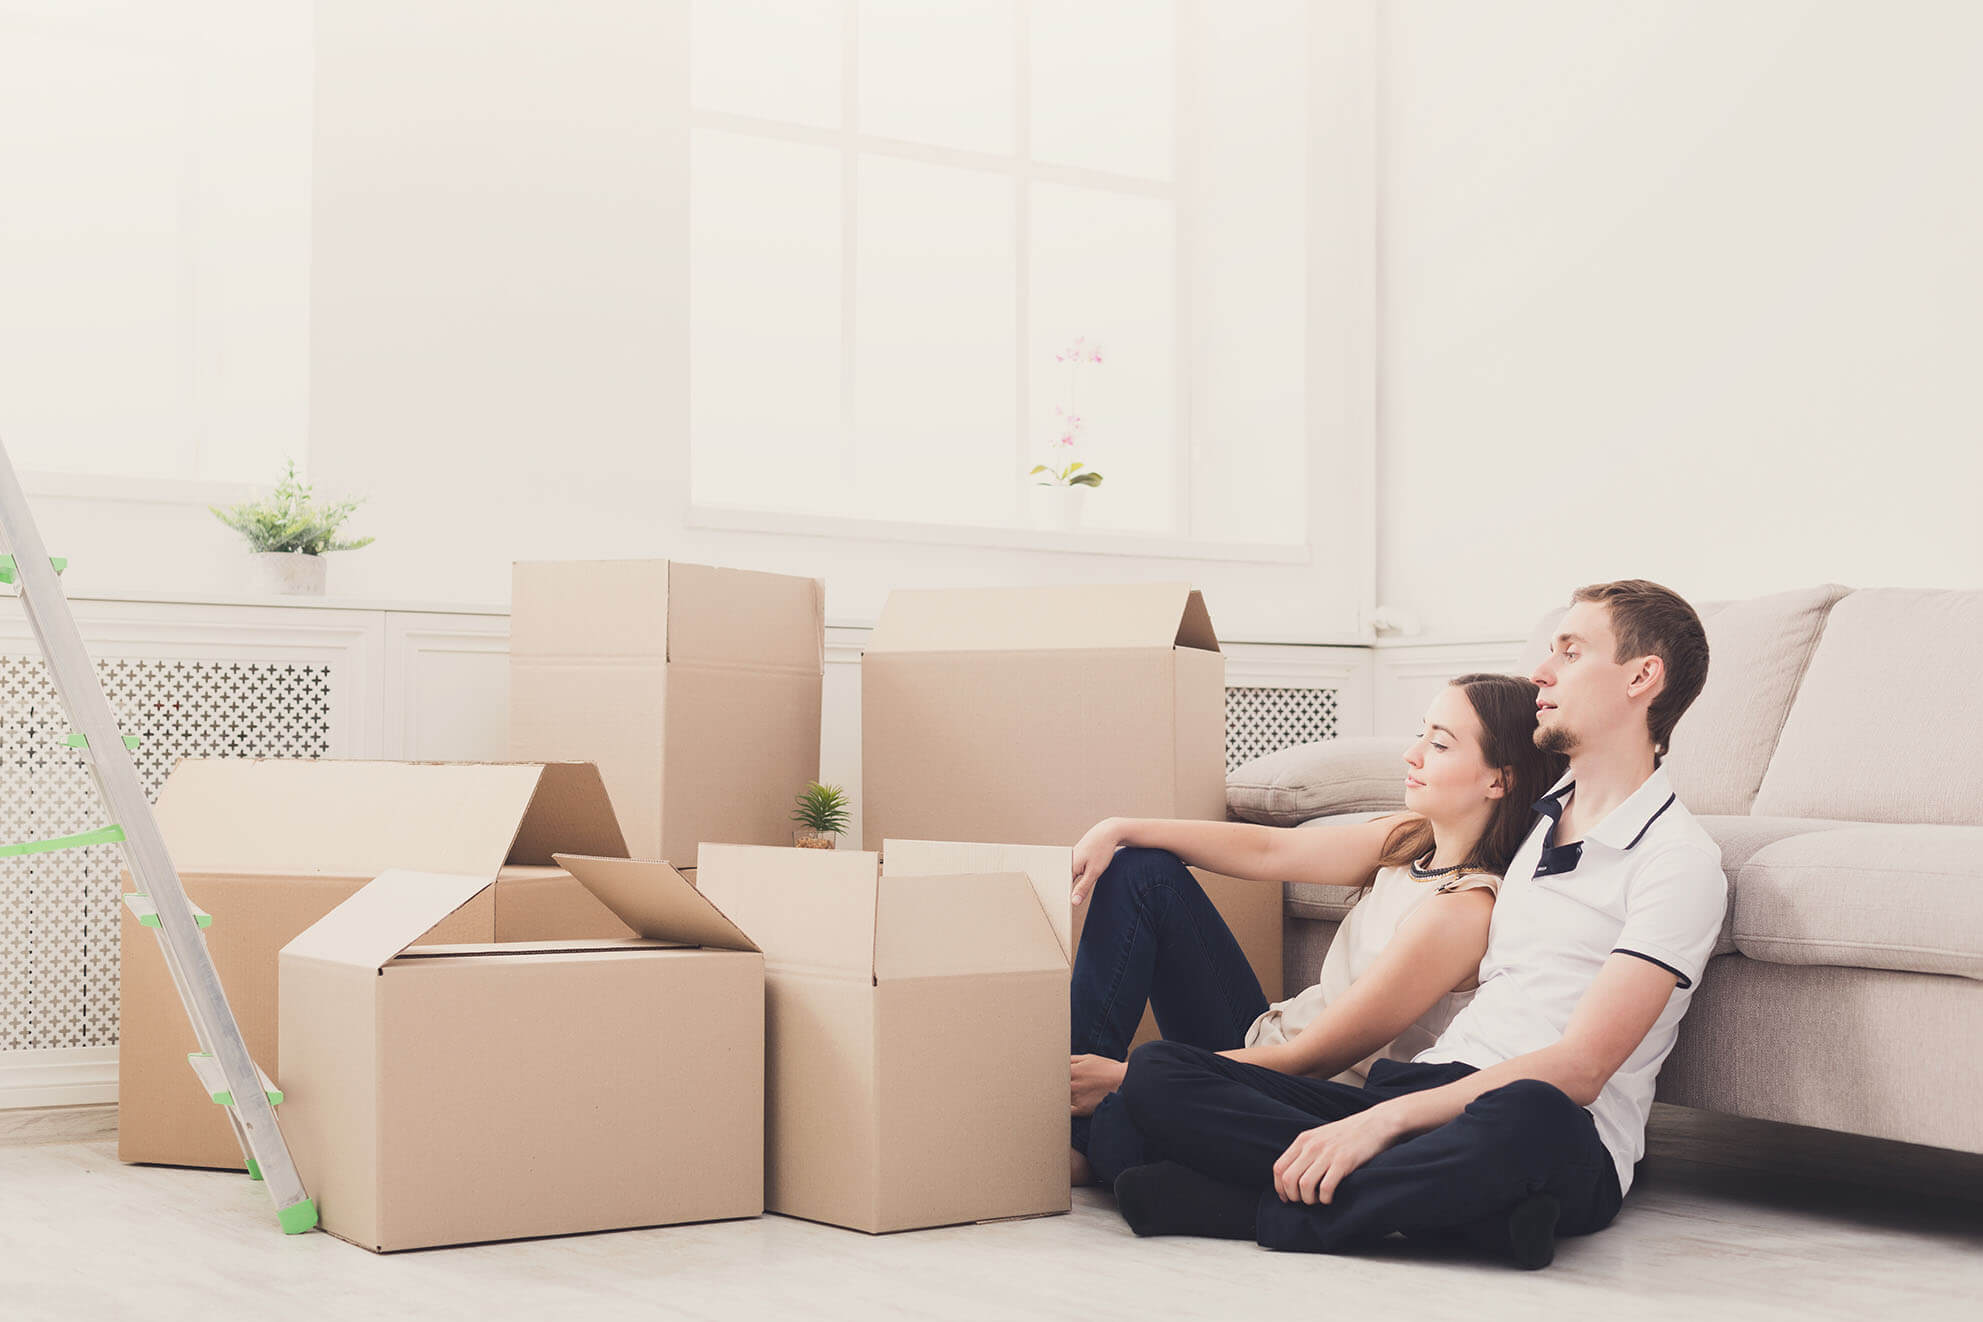 5 Mistakes First-Time Buyers Often Make